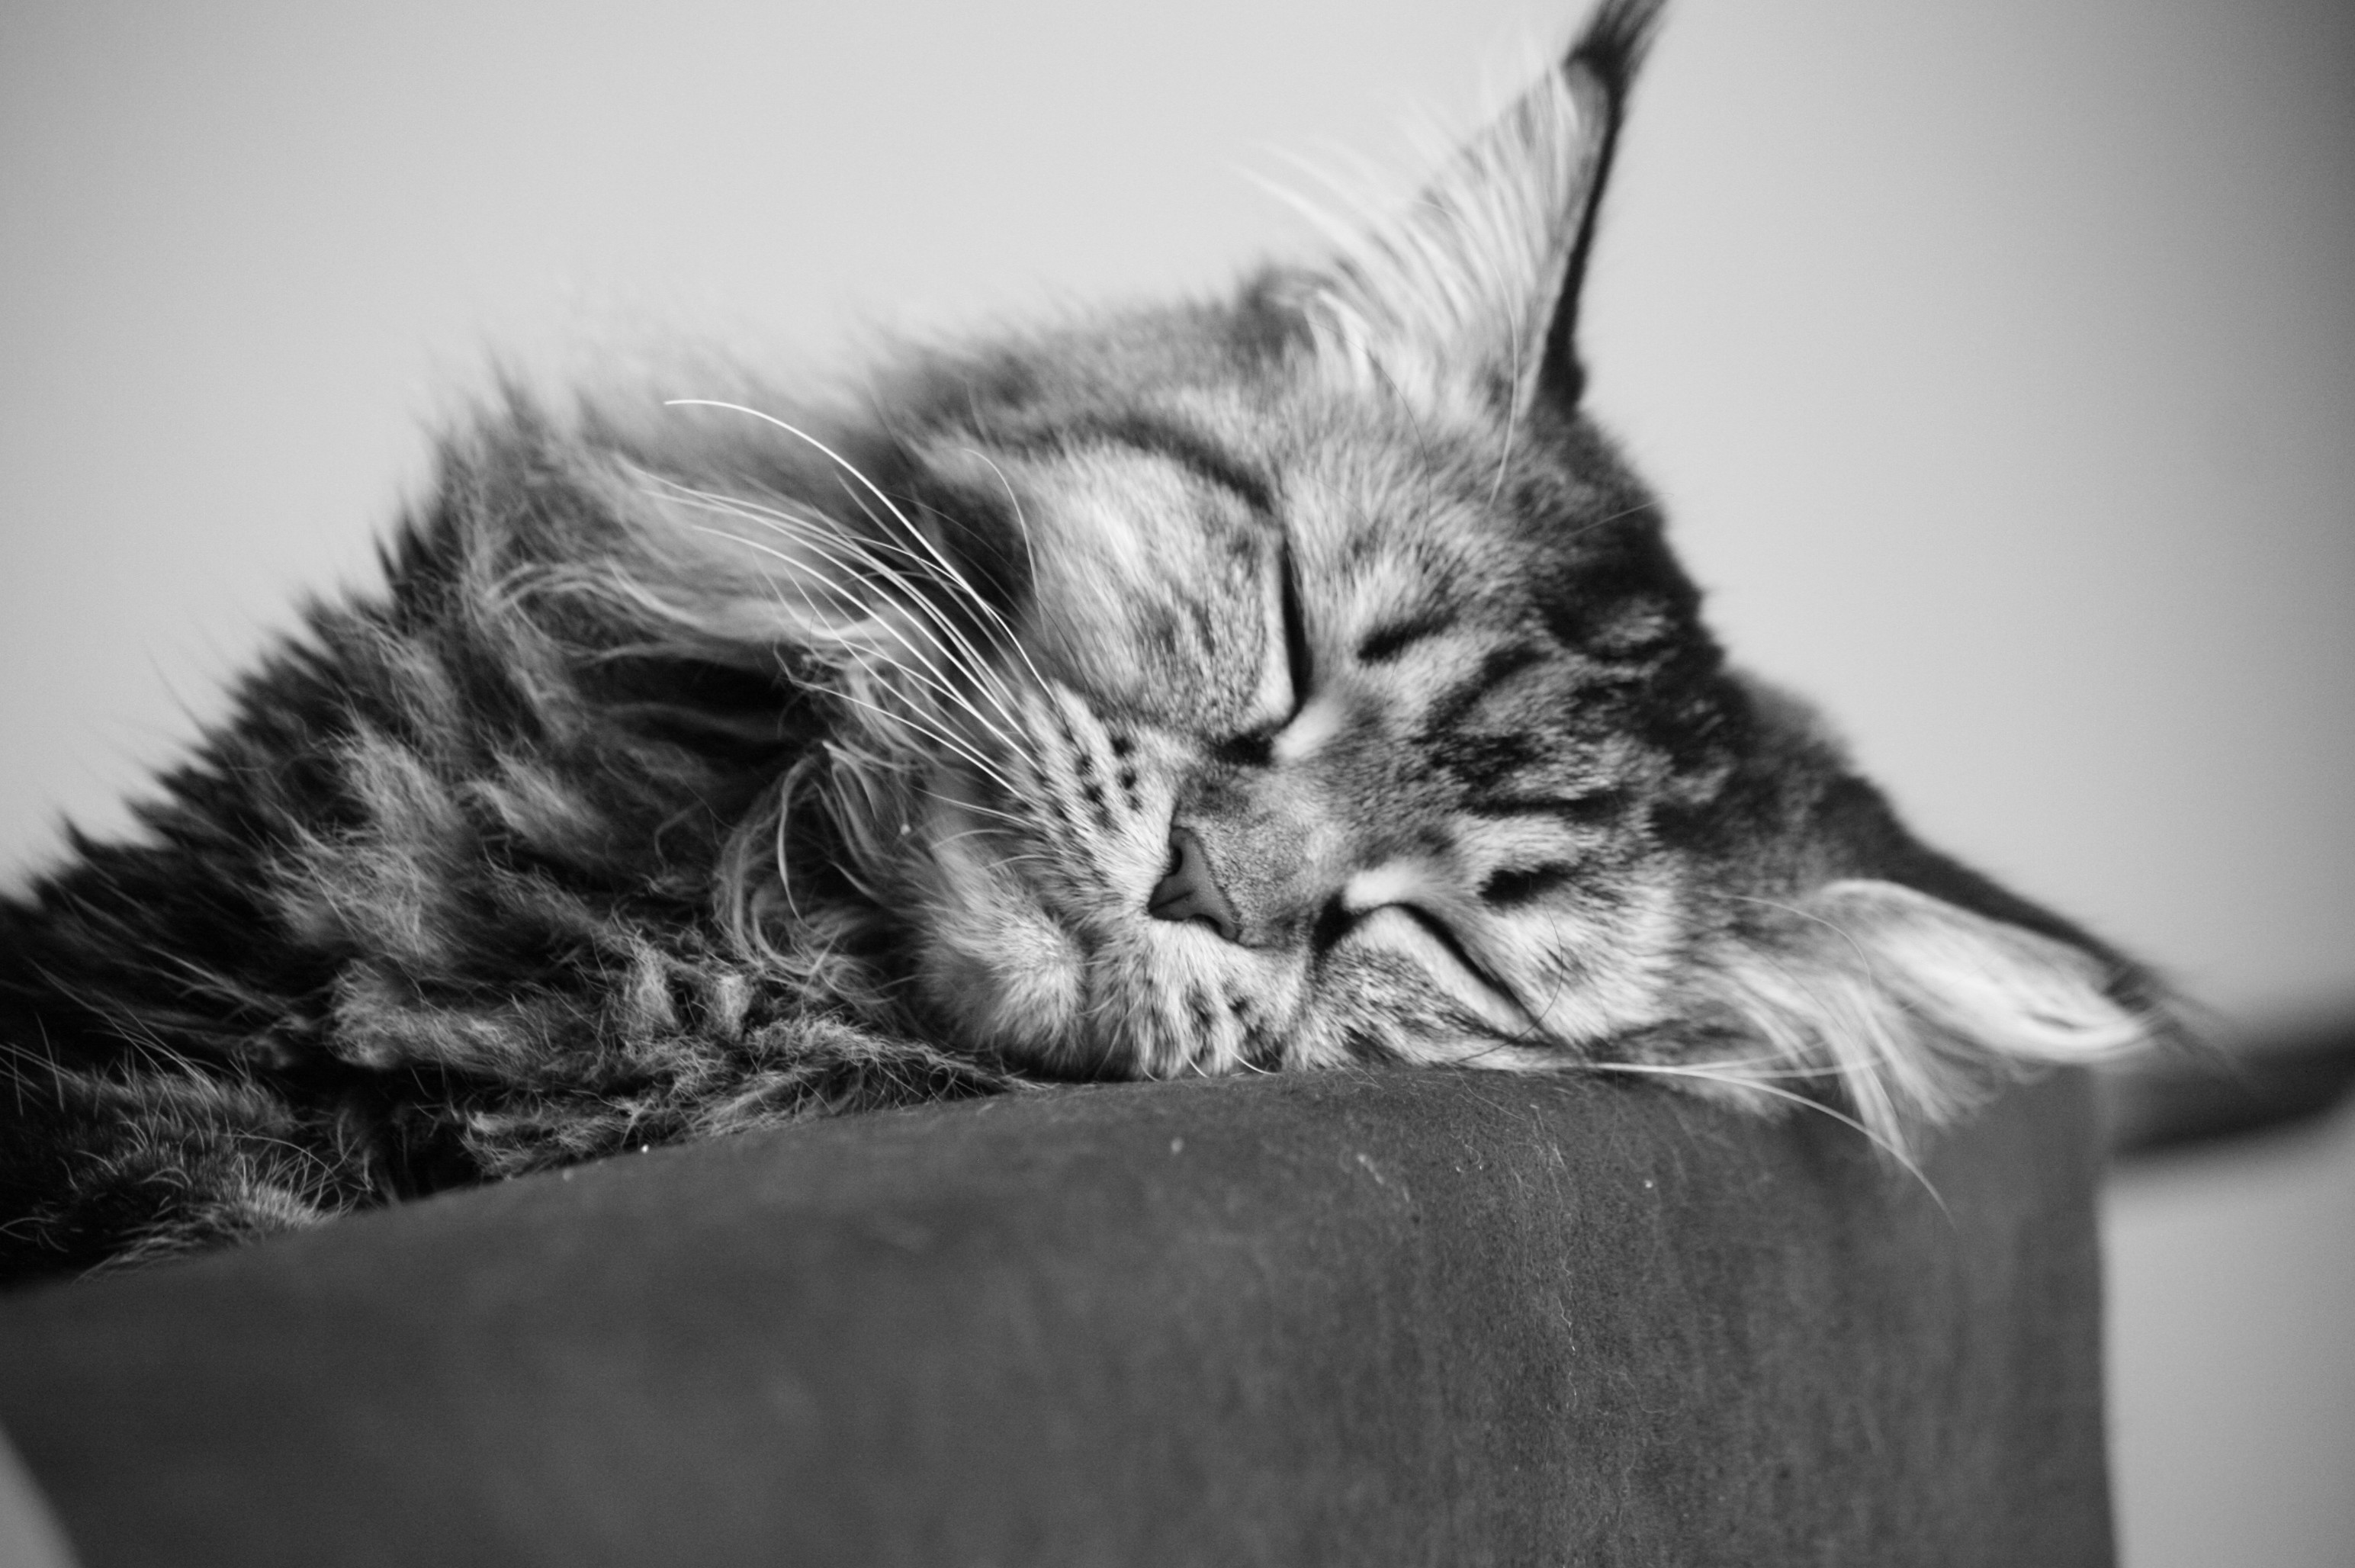 Res: 3088x2056, A young Maine Coon cat sleeping, black-and-white photo wallpapers and  images - wallpapers, pictures, photos